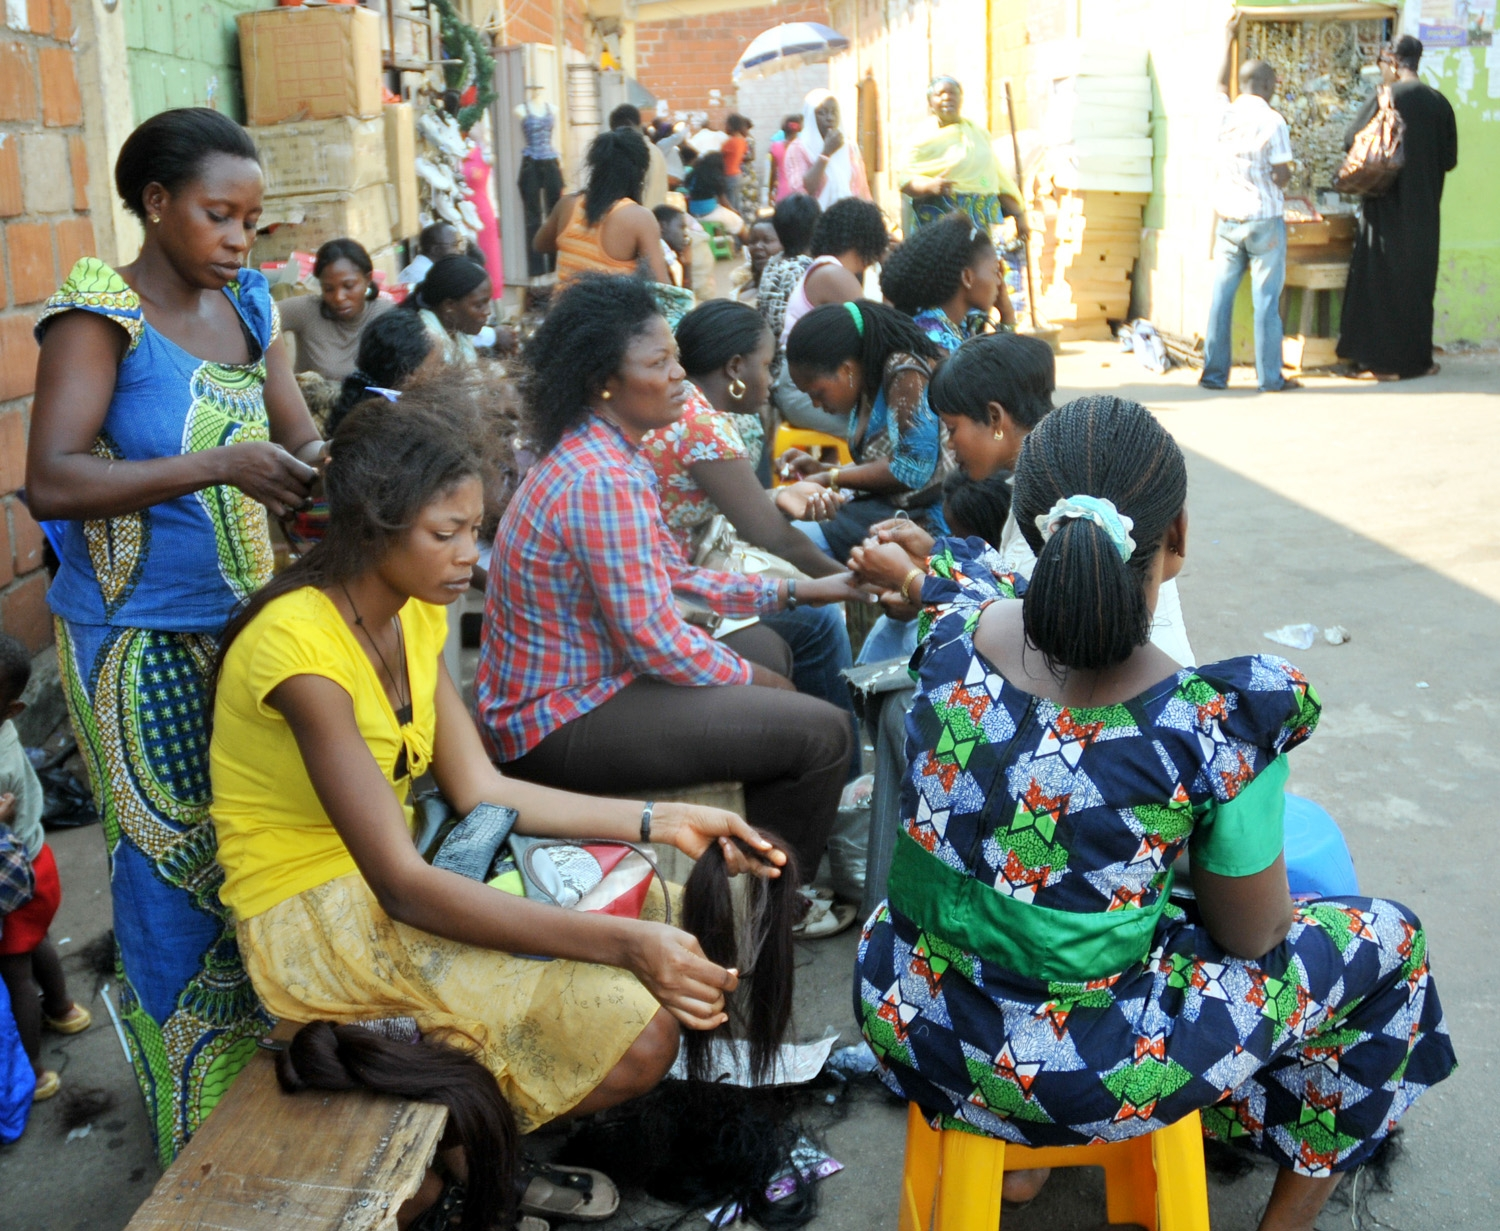 Women have their hair braided at Wuse market in Abuja, capital of Nigeria, for Christmas festivities. Photo © li huailin/Xinhua Press/Corbis